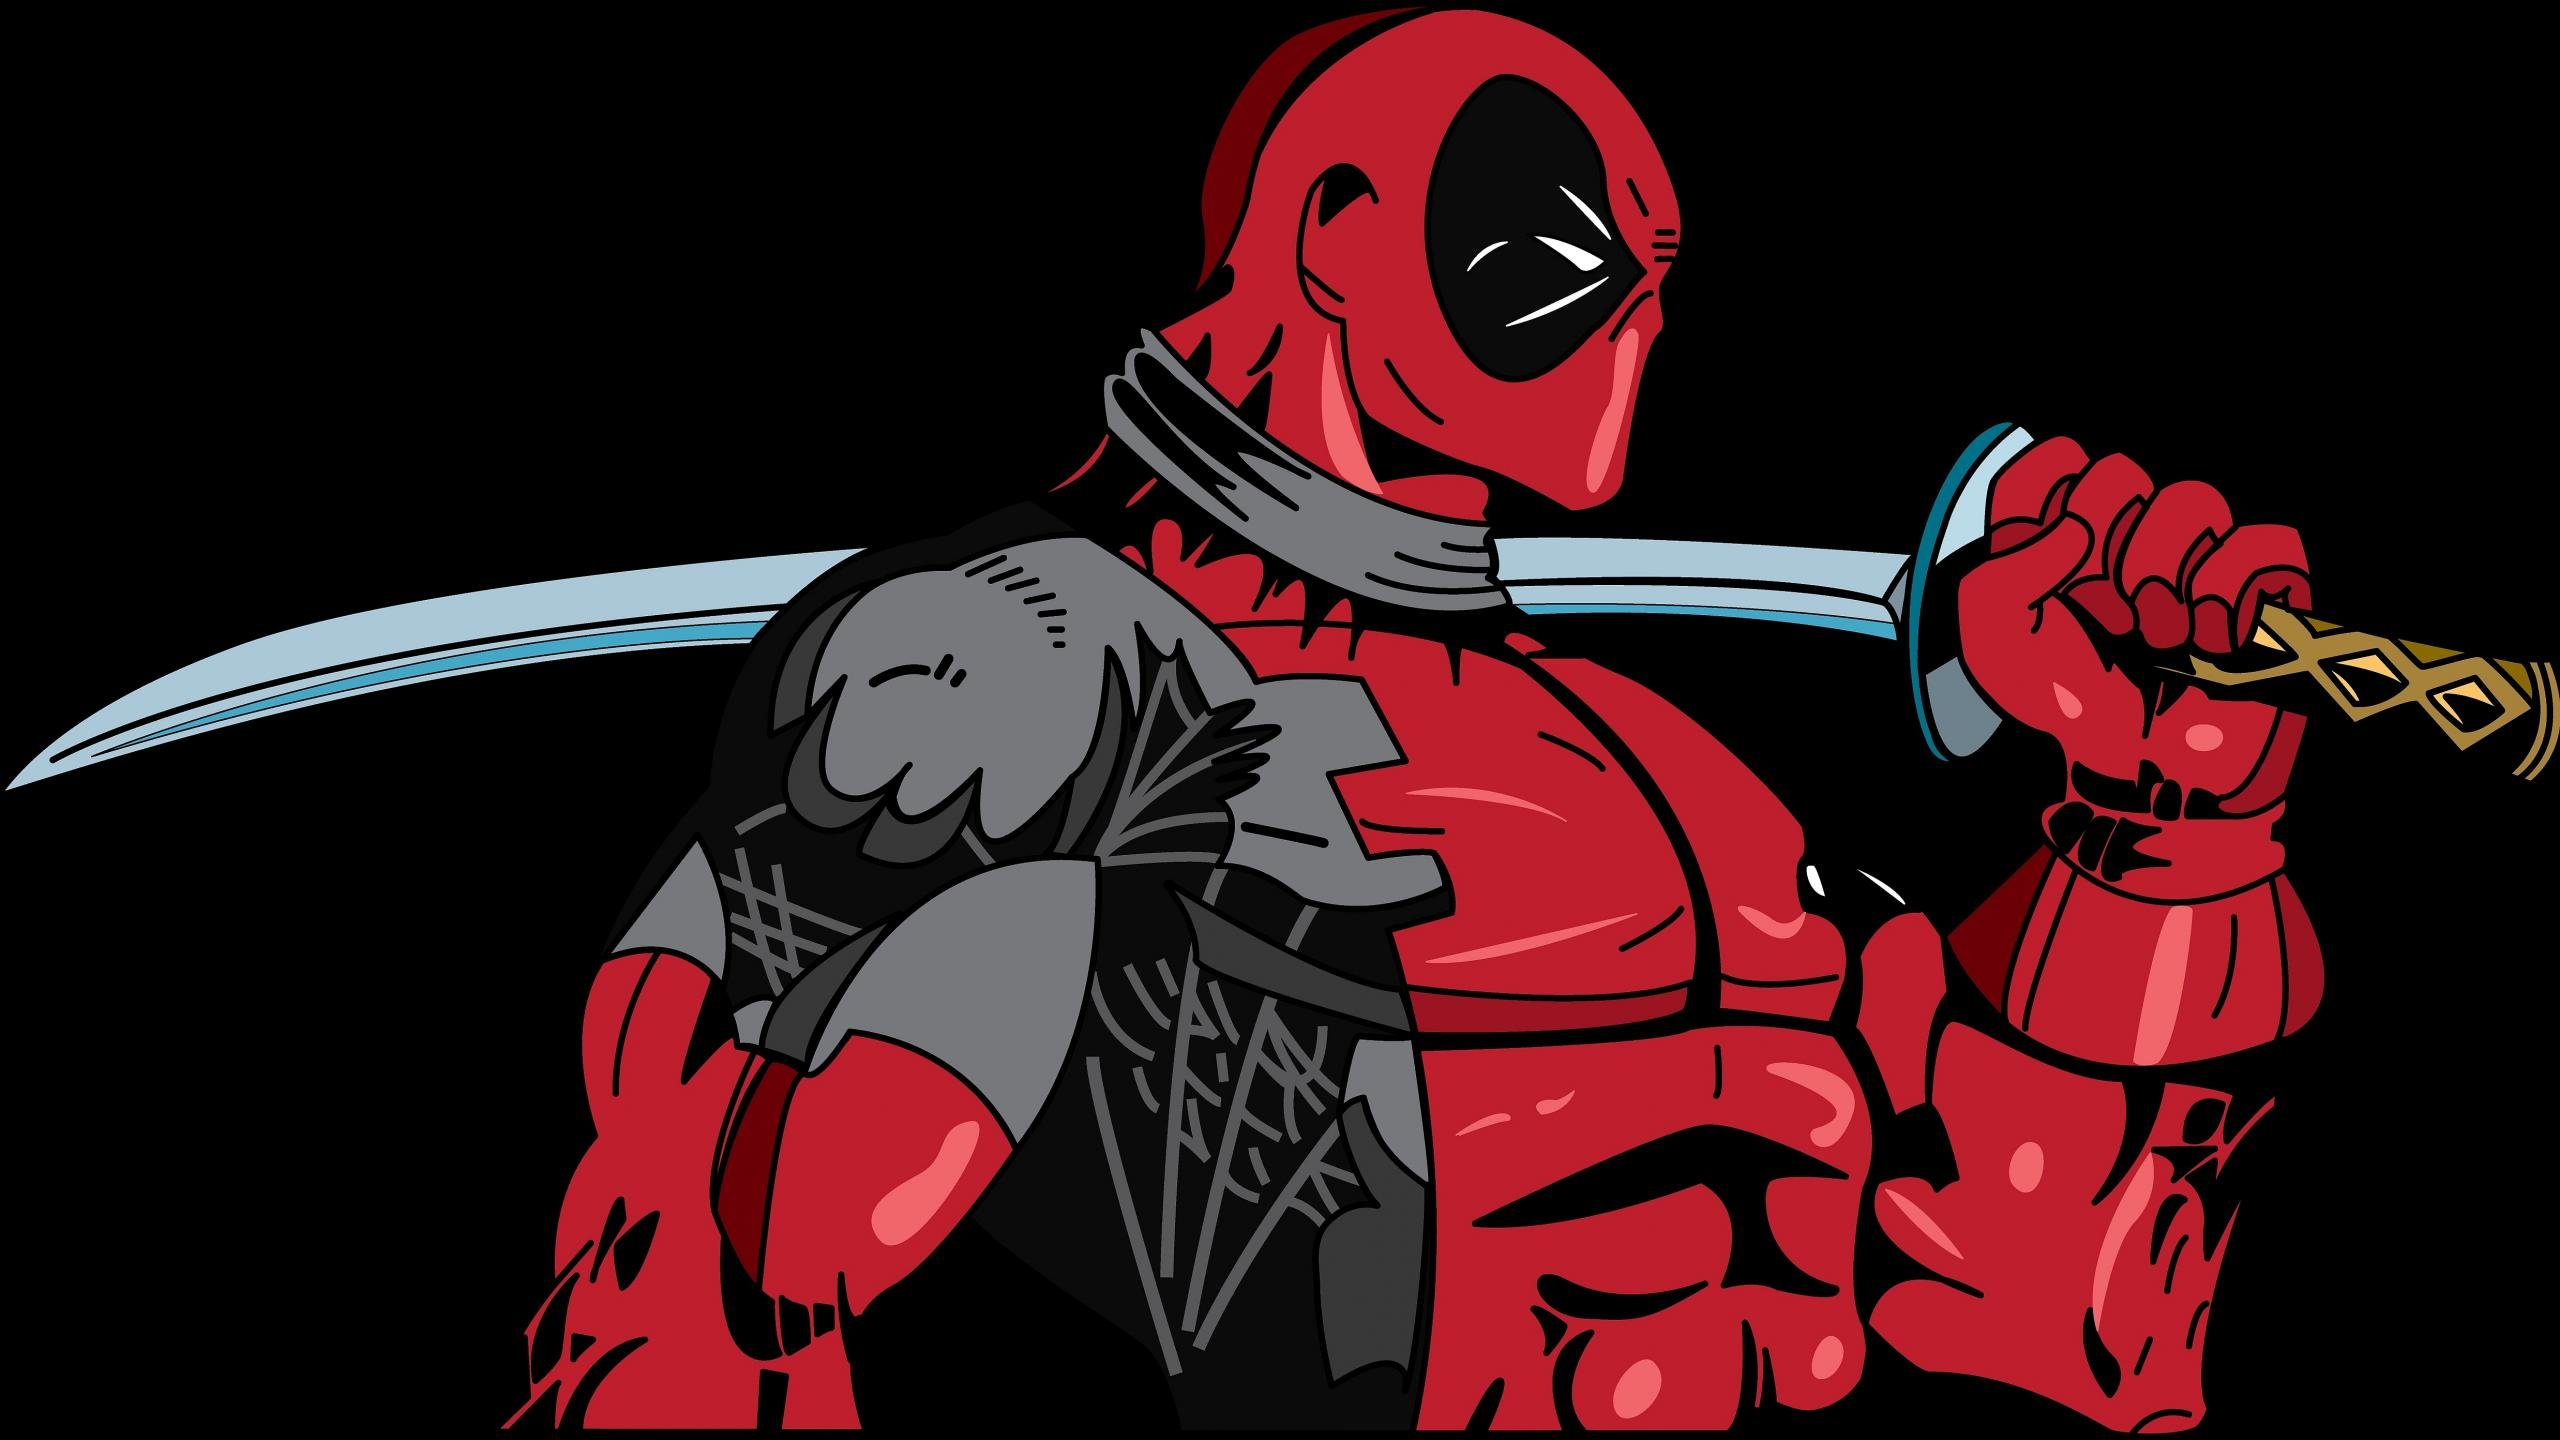 Download Hd 2560x1440 Deadpool Desktop Background ID349729 For Free